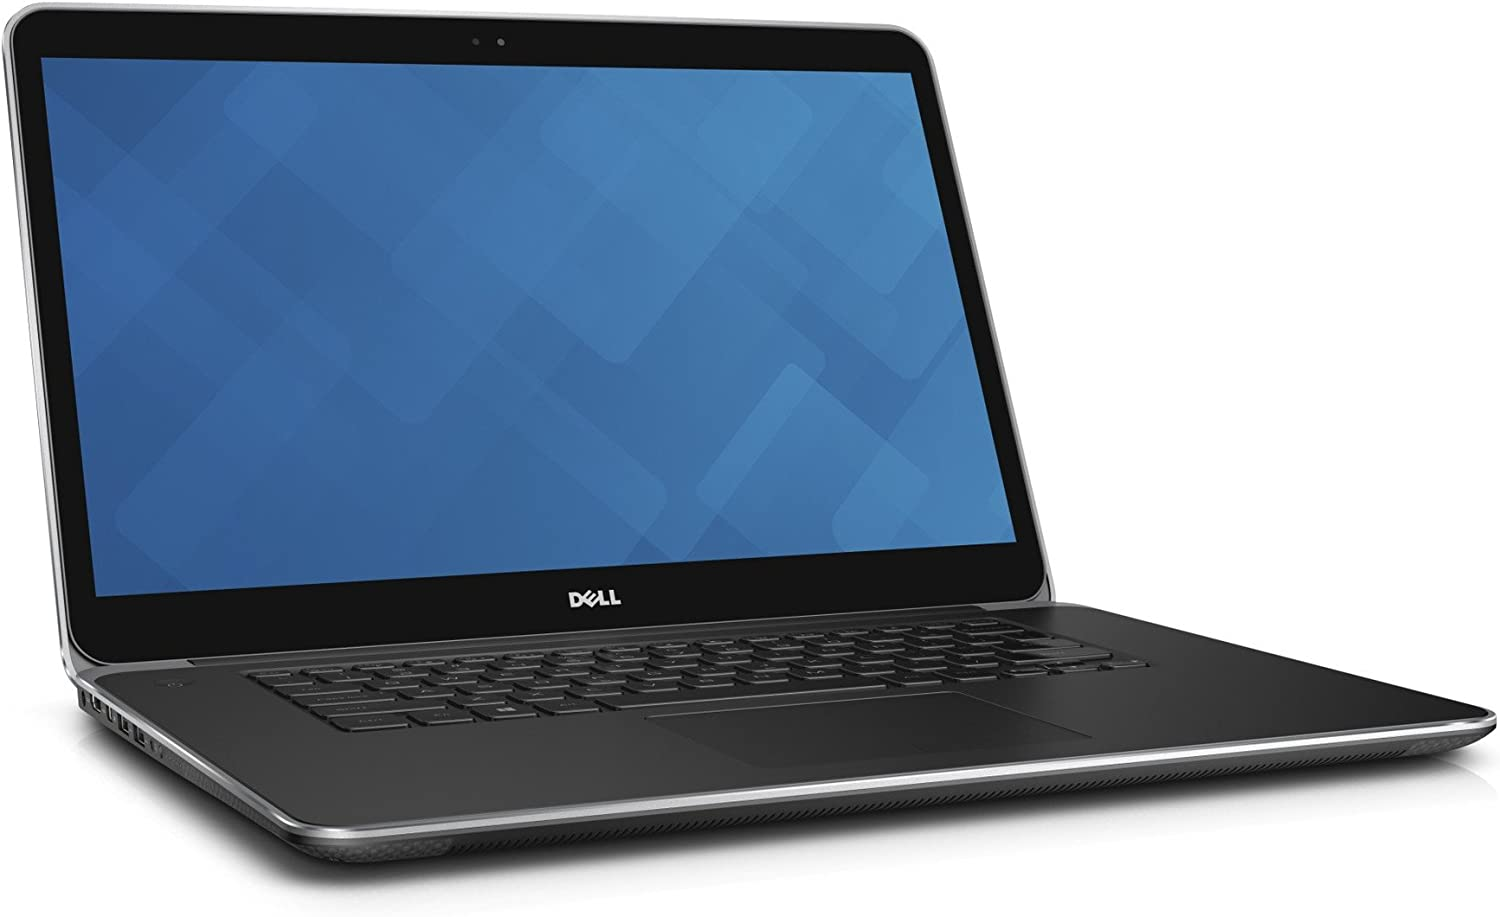 Dell Precision M3800 15.6' Business Laptop NoteBook (Intel Quad Core i7 4712 HQ, 8GB Ram, 256GB SSD, Nvidia Quadro 2 GB Graphics, HDMI, Camera, WIFI, SD Card) Win 10 Pro (Renewed)